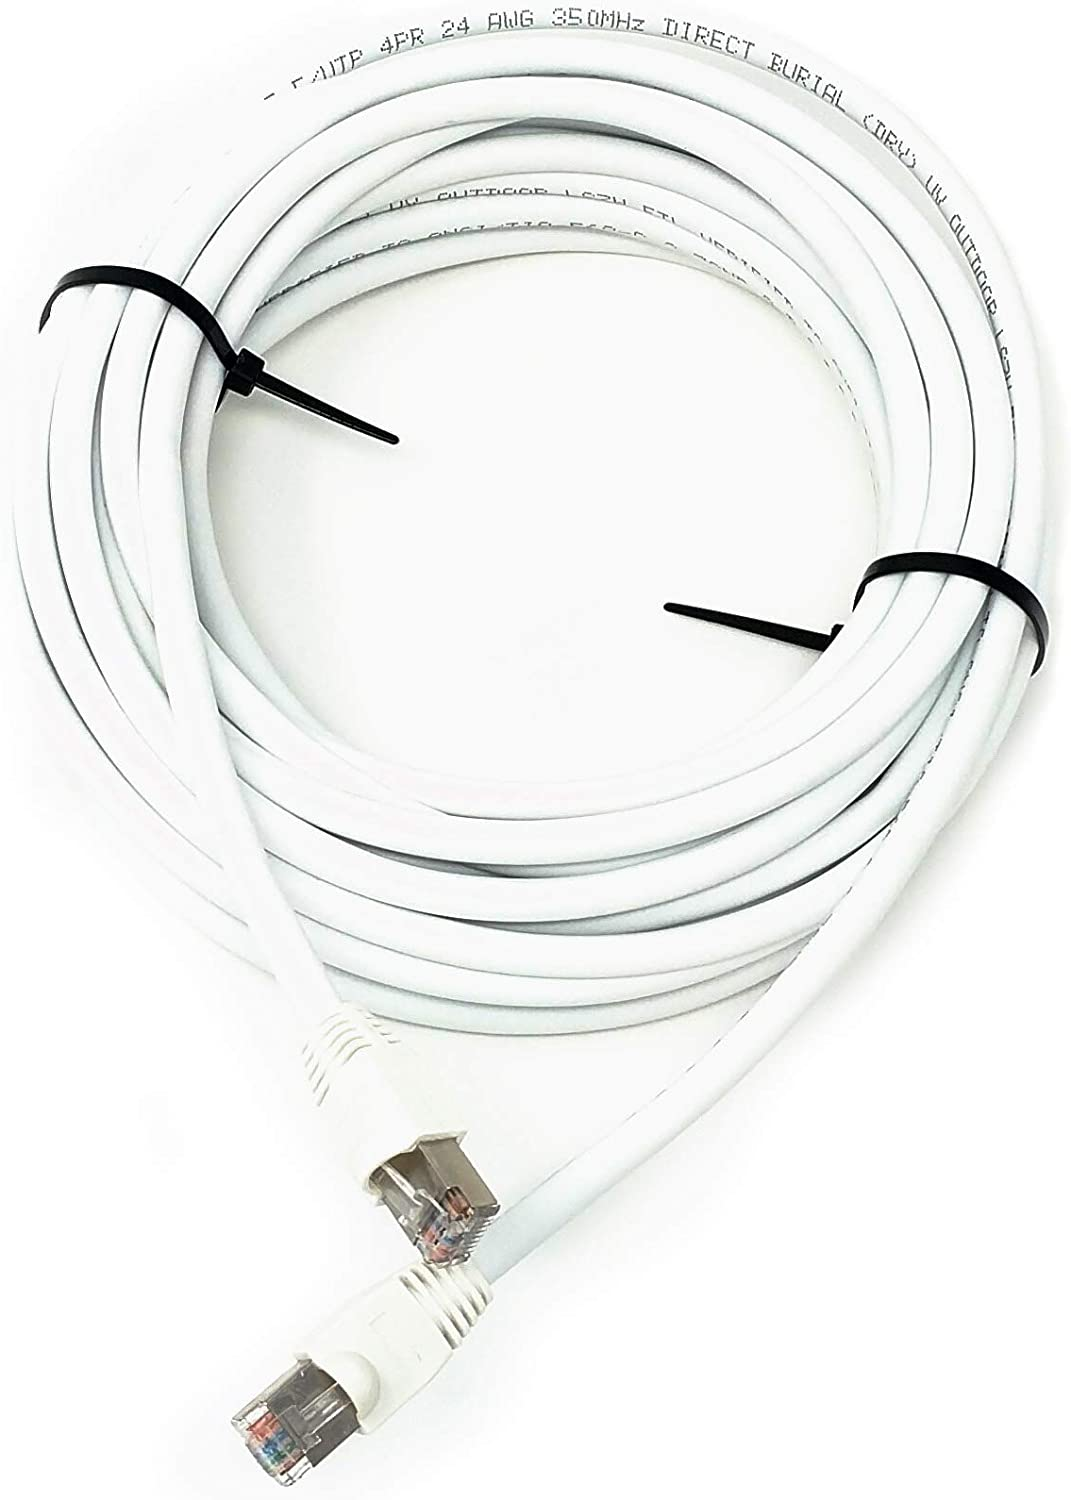 Pure Copper 250ft Cat5e Outdoor Waterproof Ethernet Cable Direct Burial Shielded White